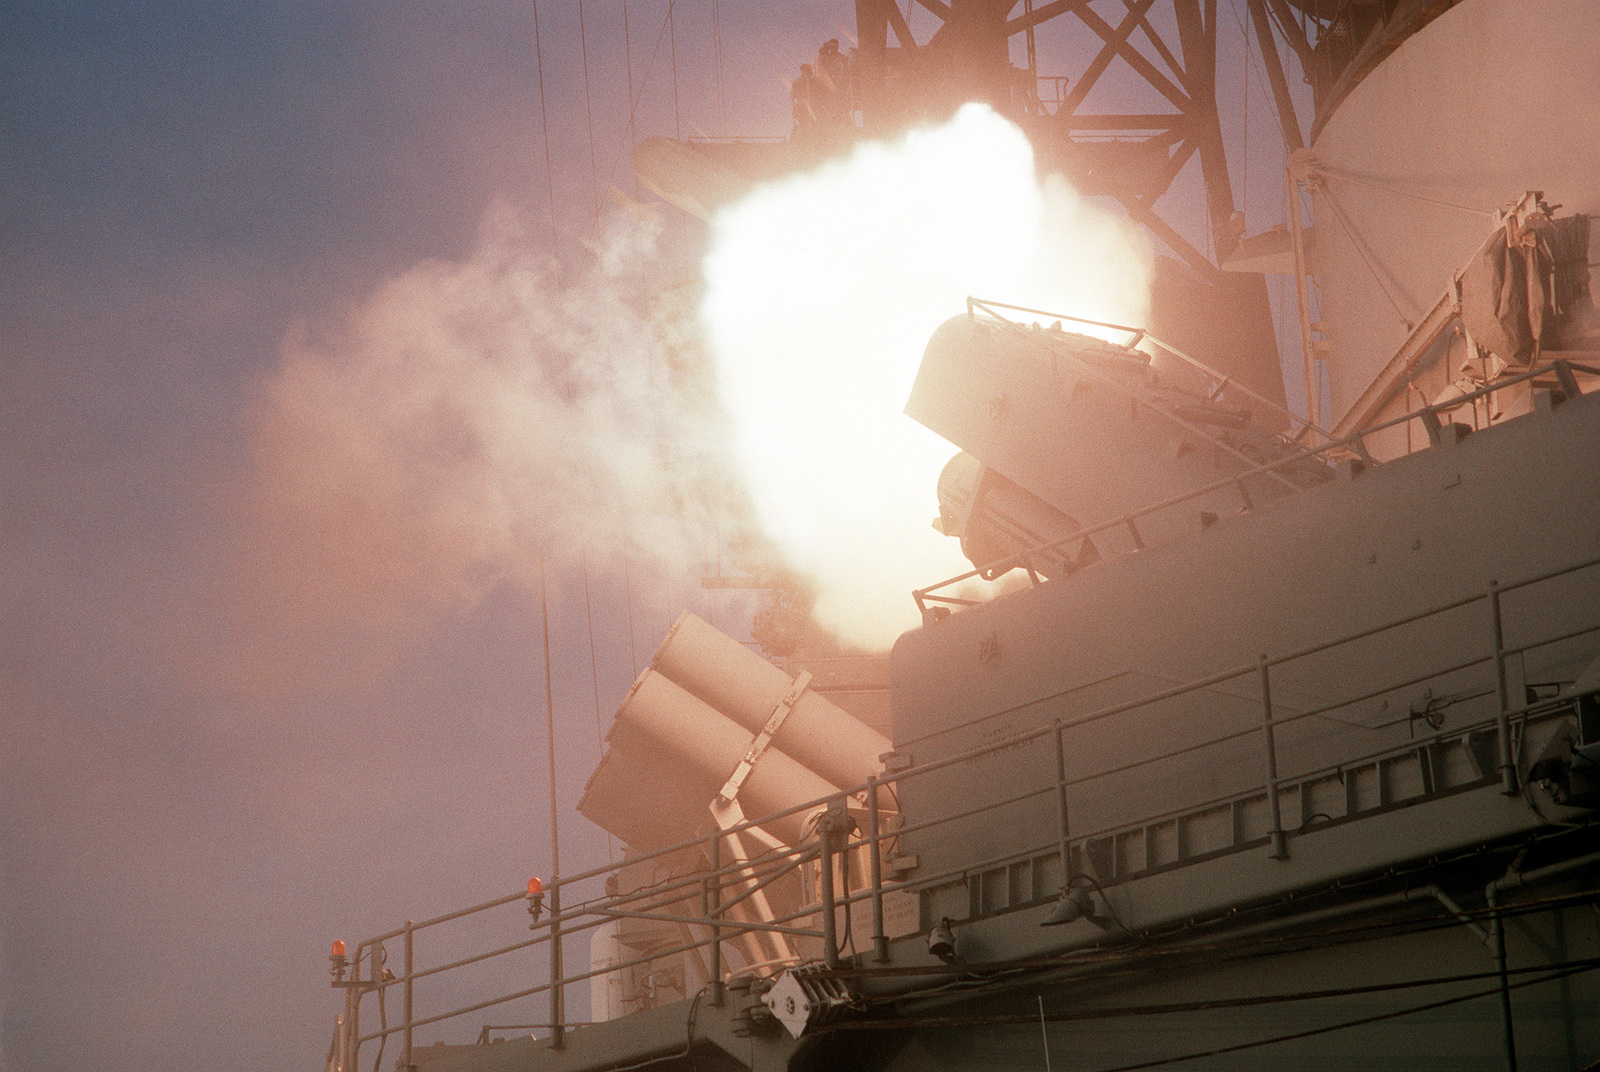 A fireball illuminates the upper decks of the battleship USS WISCONSIN (BB-64) as a BGM-109 Tomahawk land-attack missile is launched during Operation Desert Storm